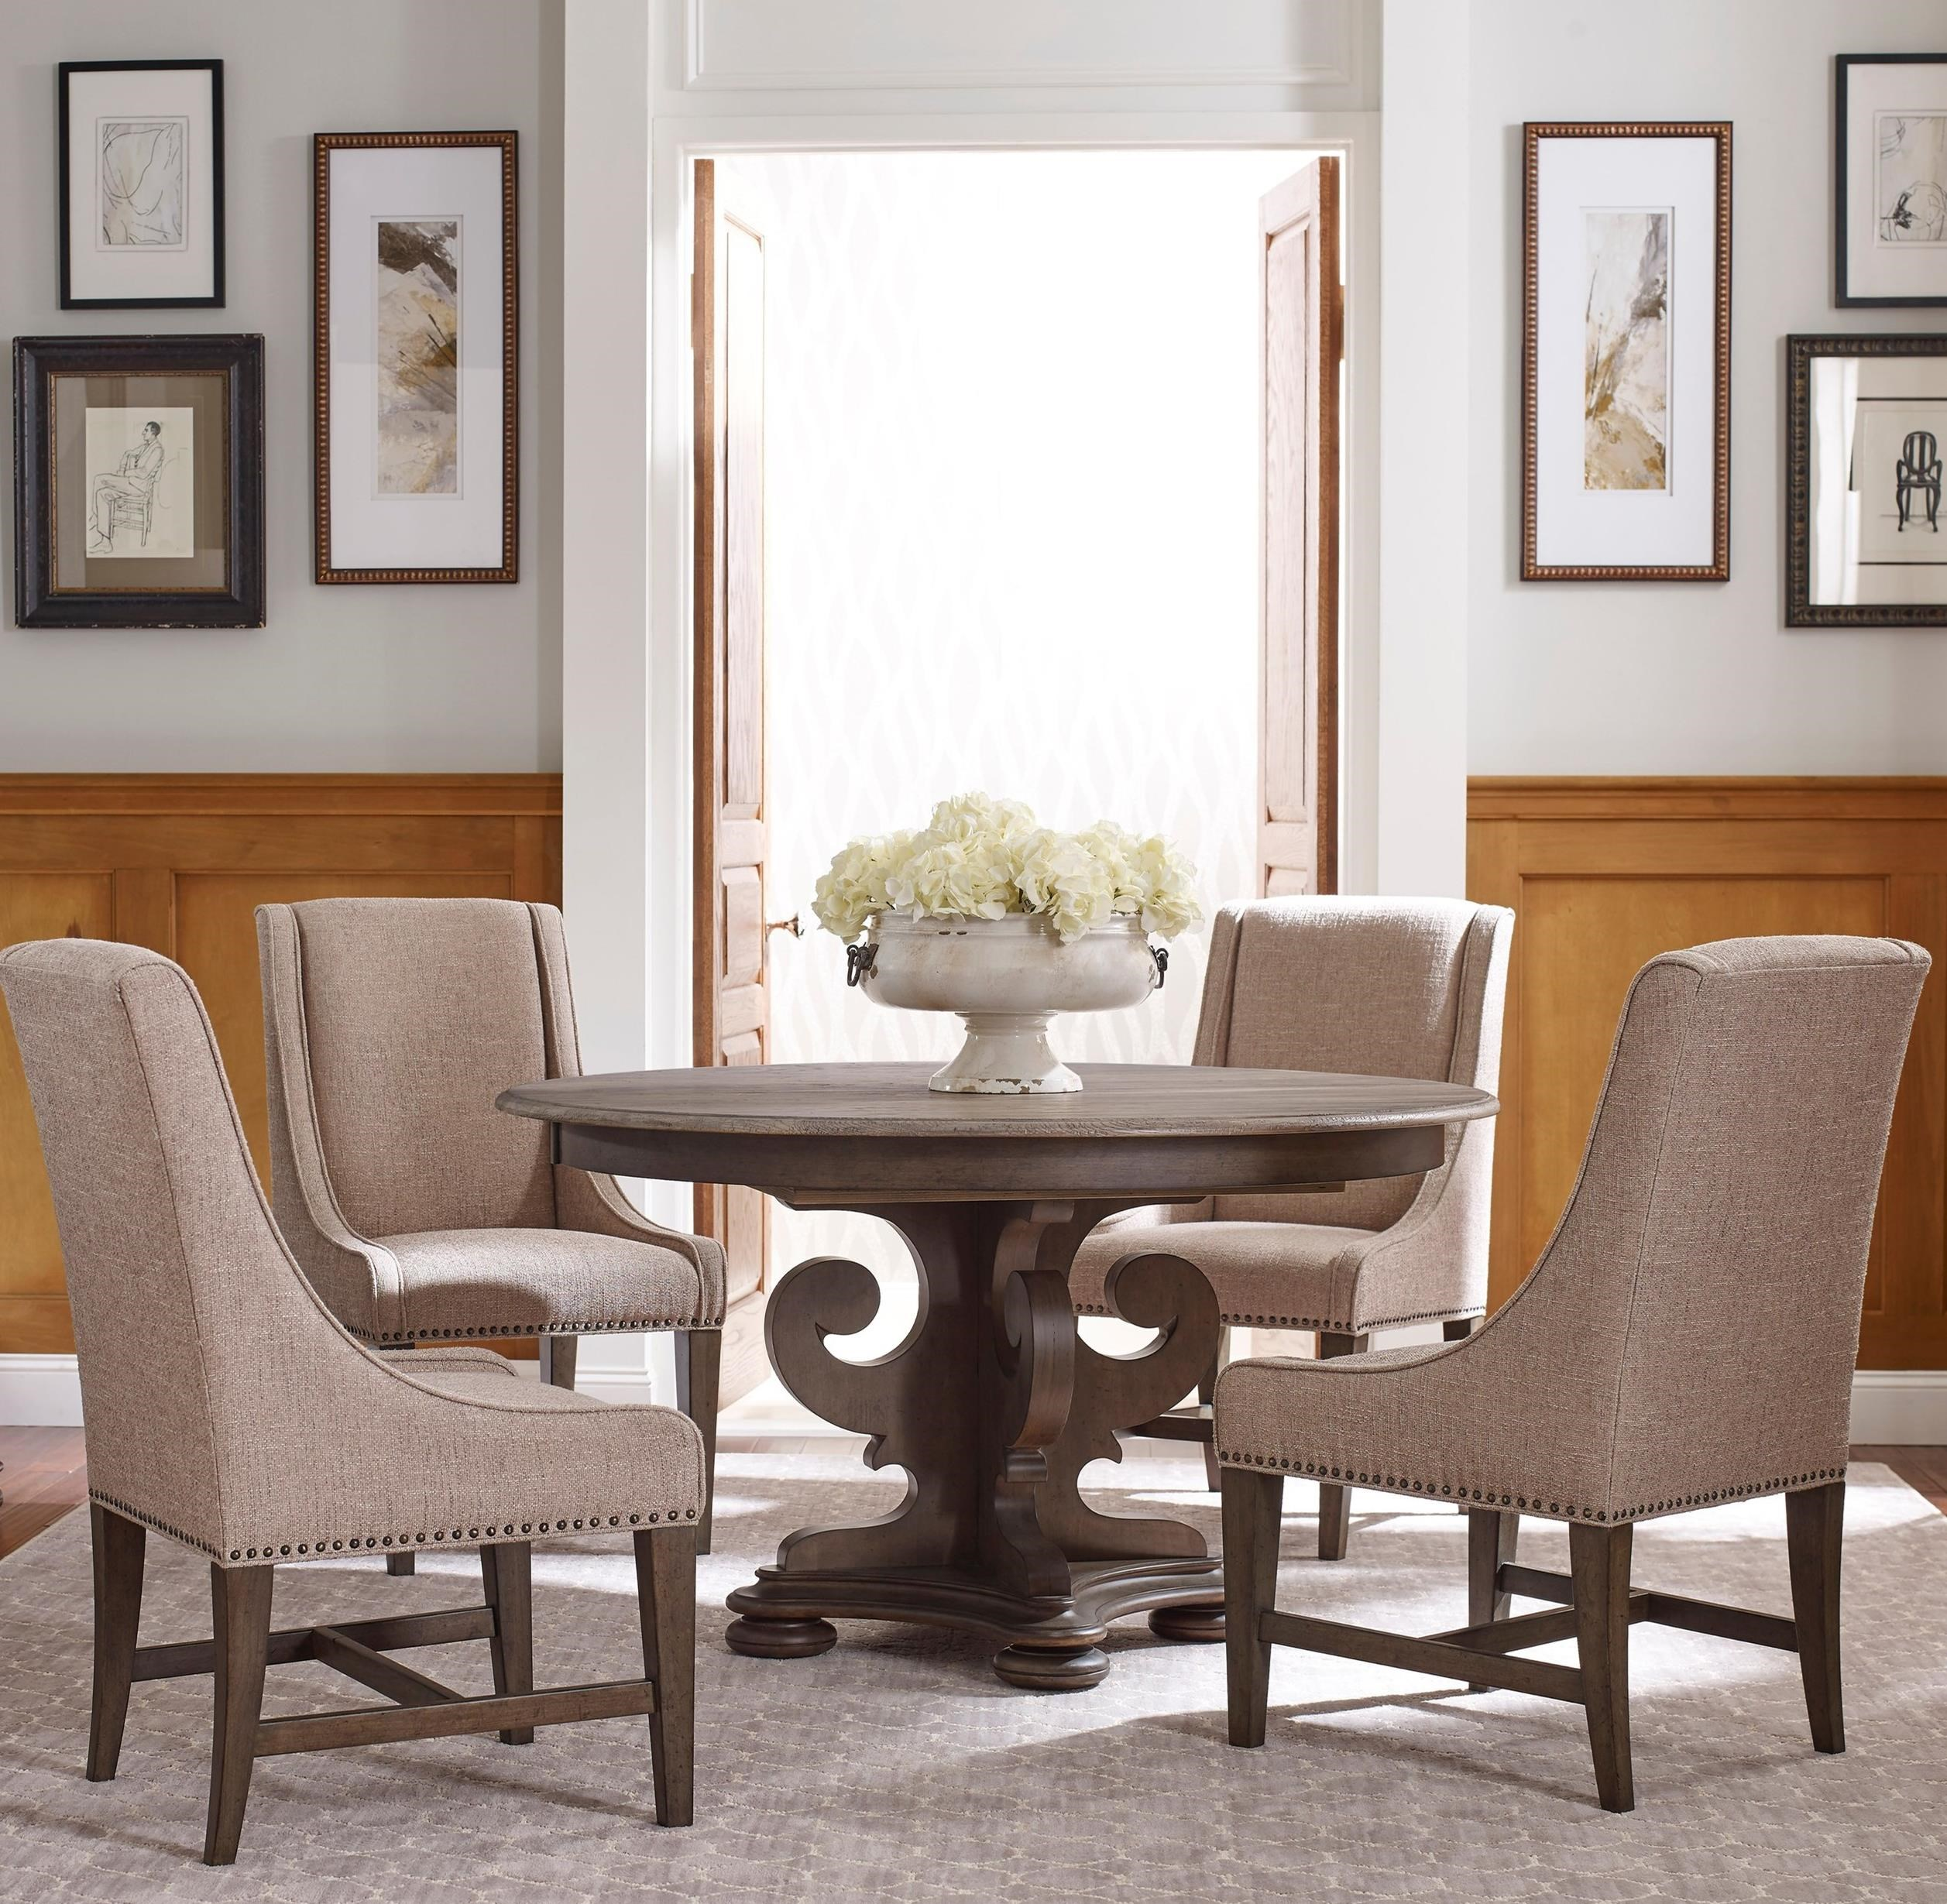 Kincaid Dining Room Set: Kincaid Furniture Greyson Five Piece Grant Round Table And Lawson Host Chairs Dining Set